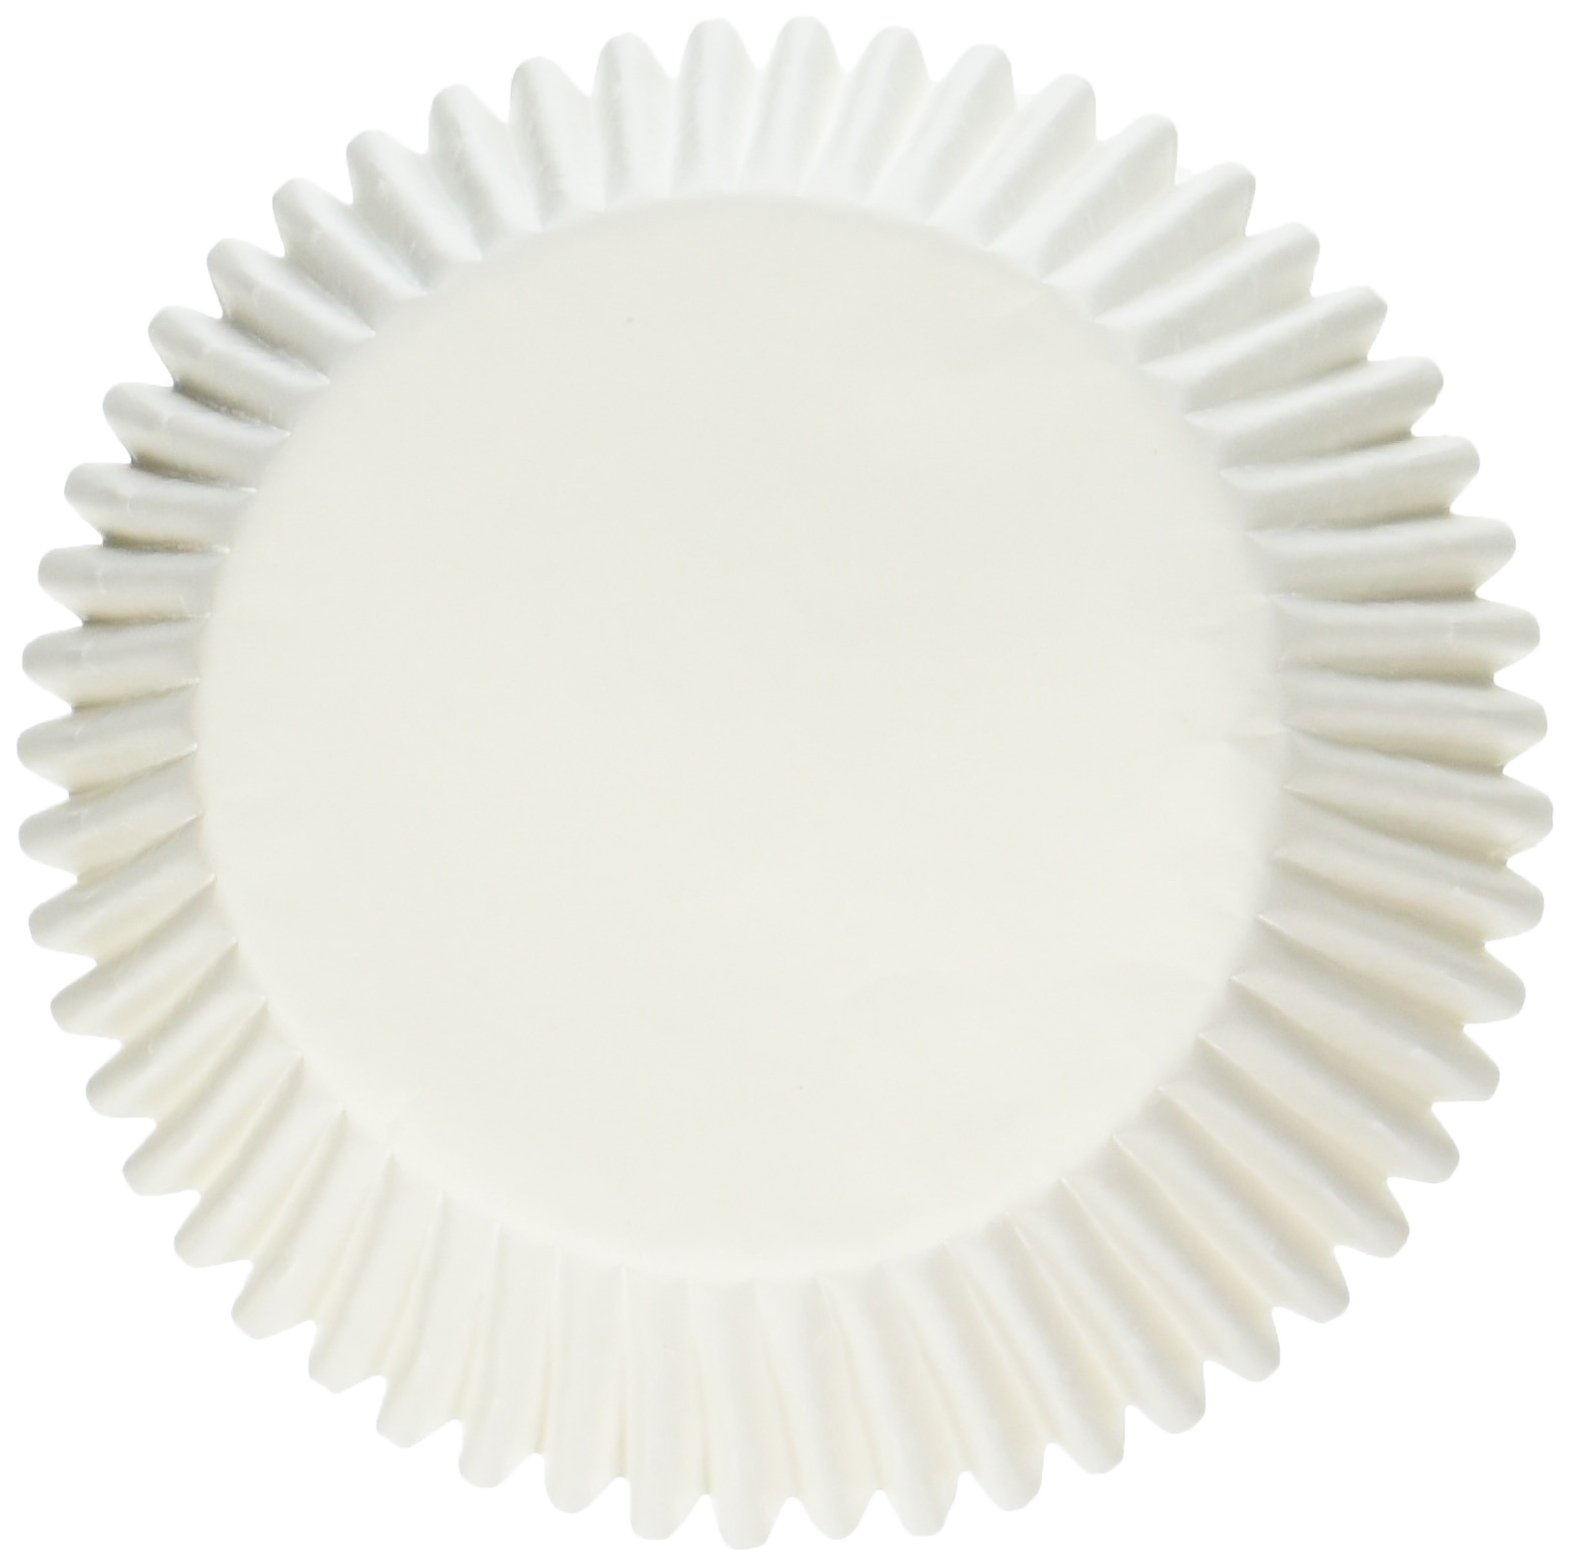 Norpro Giant Muffin Cups, White, Pack of 500 by Norpro (Image #2)